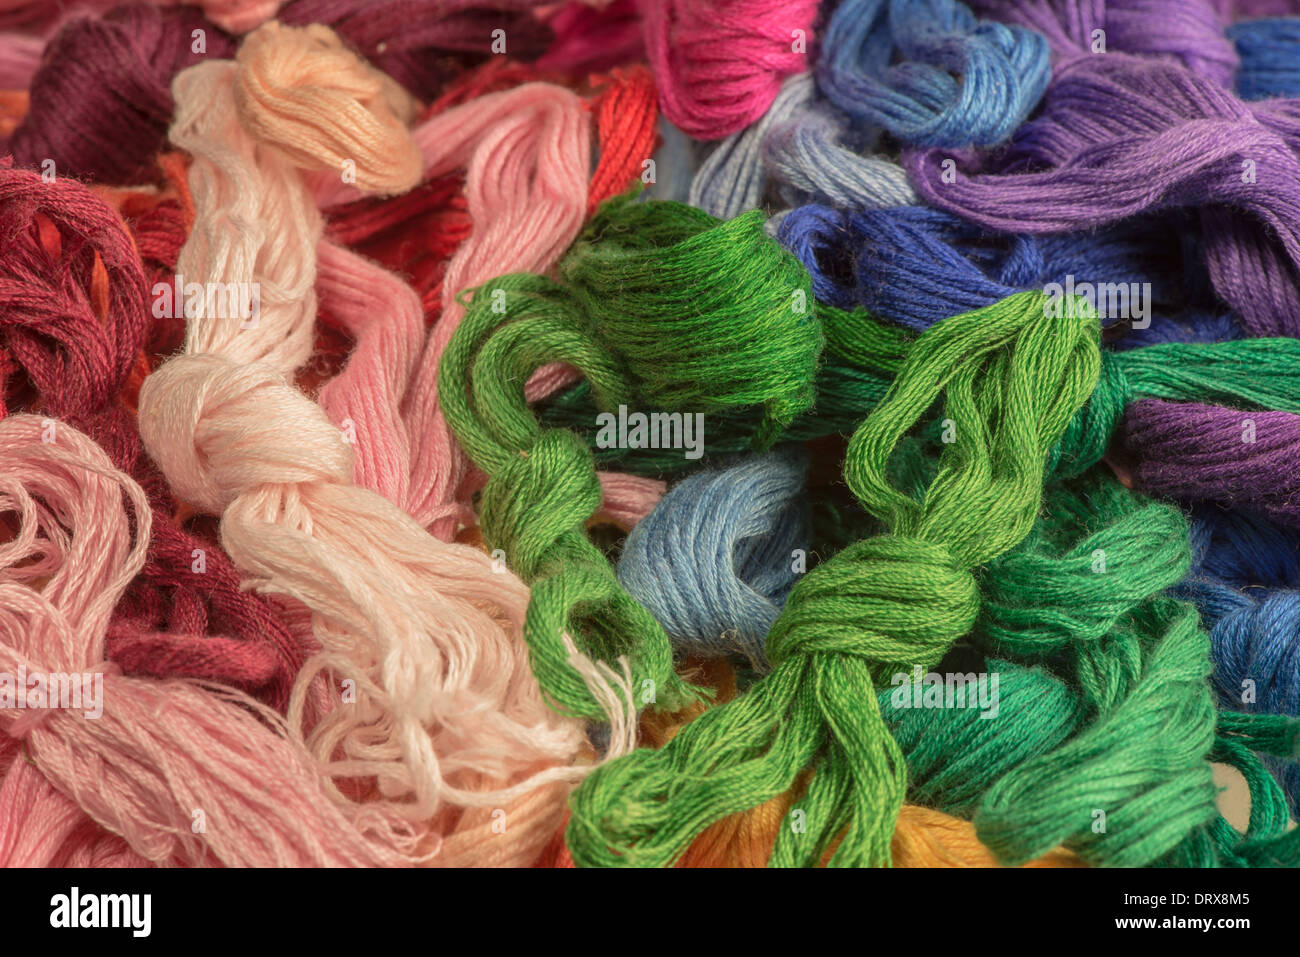 skeins of multicolored threads for embroidery - muline. background - Stock Image